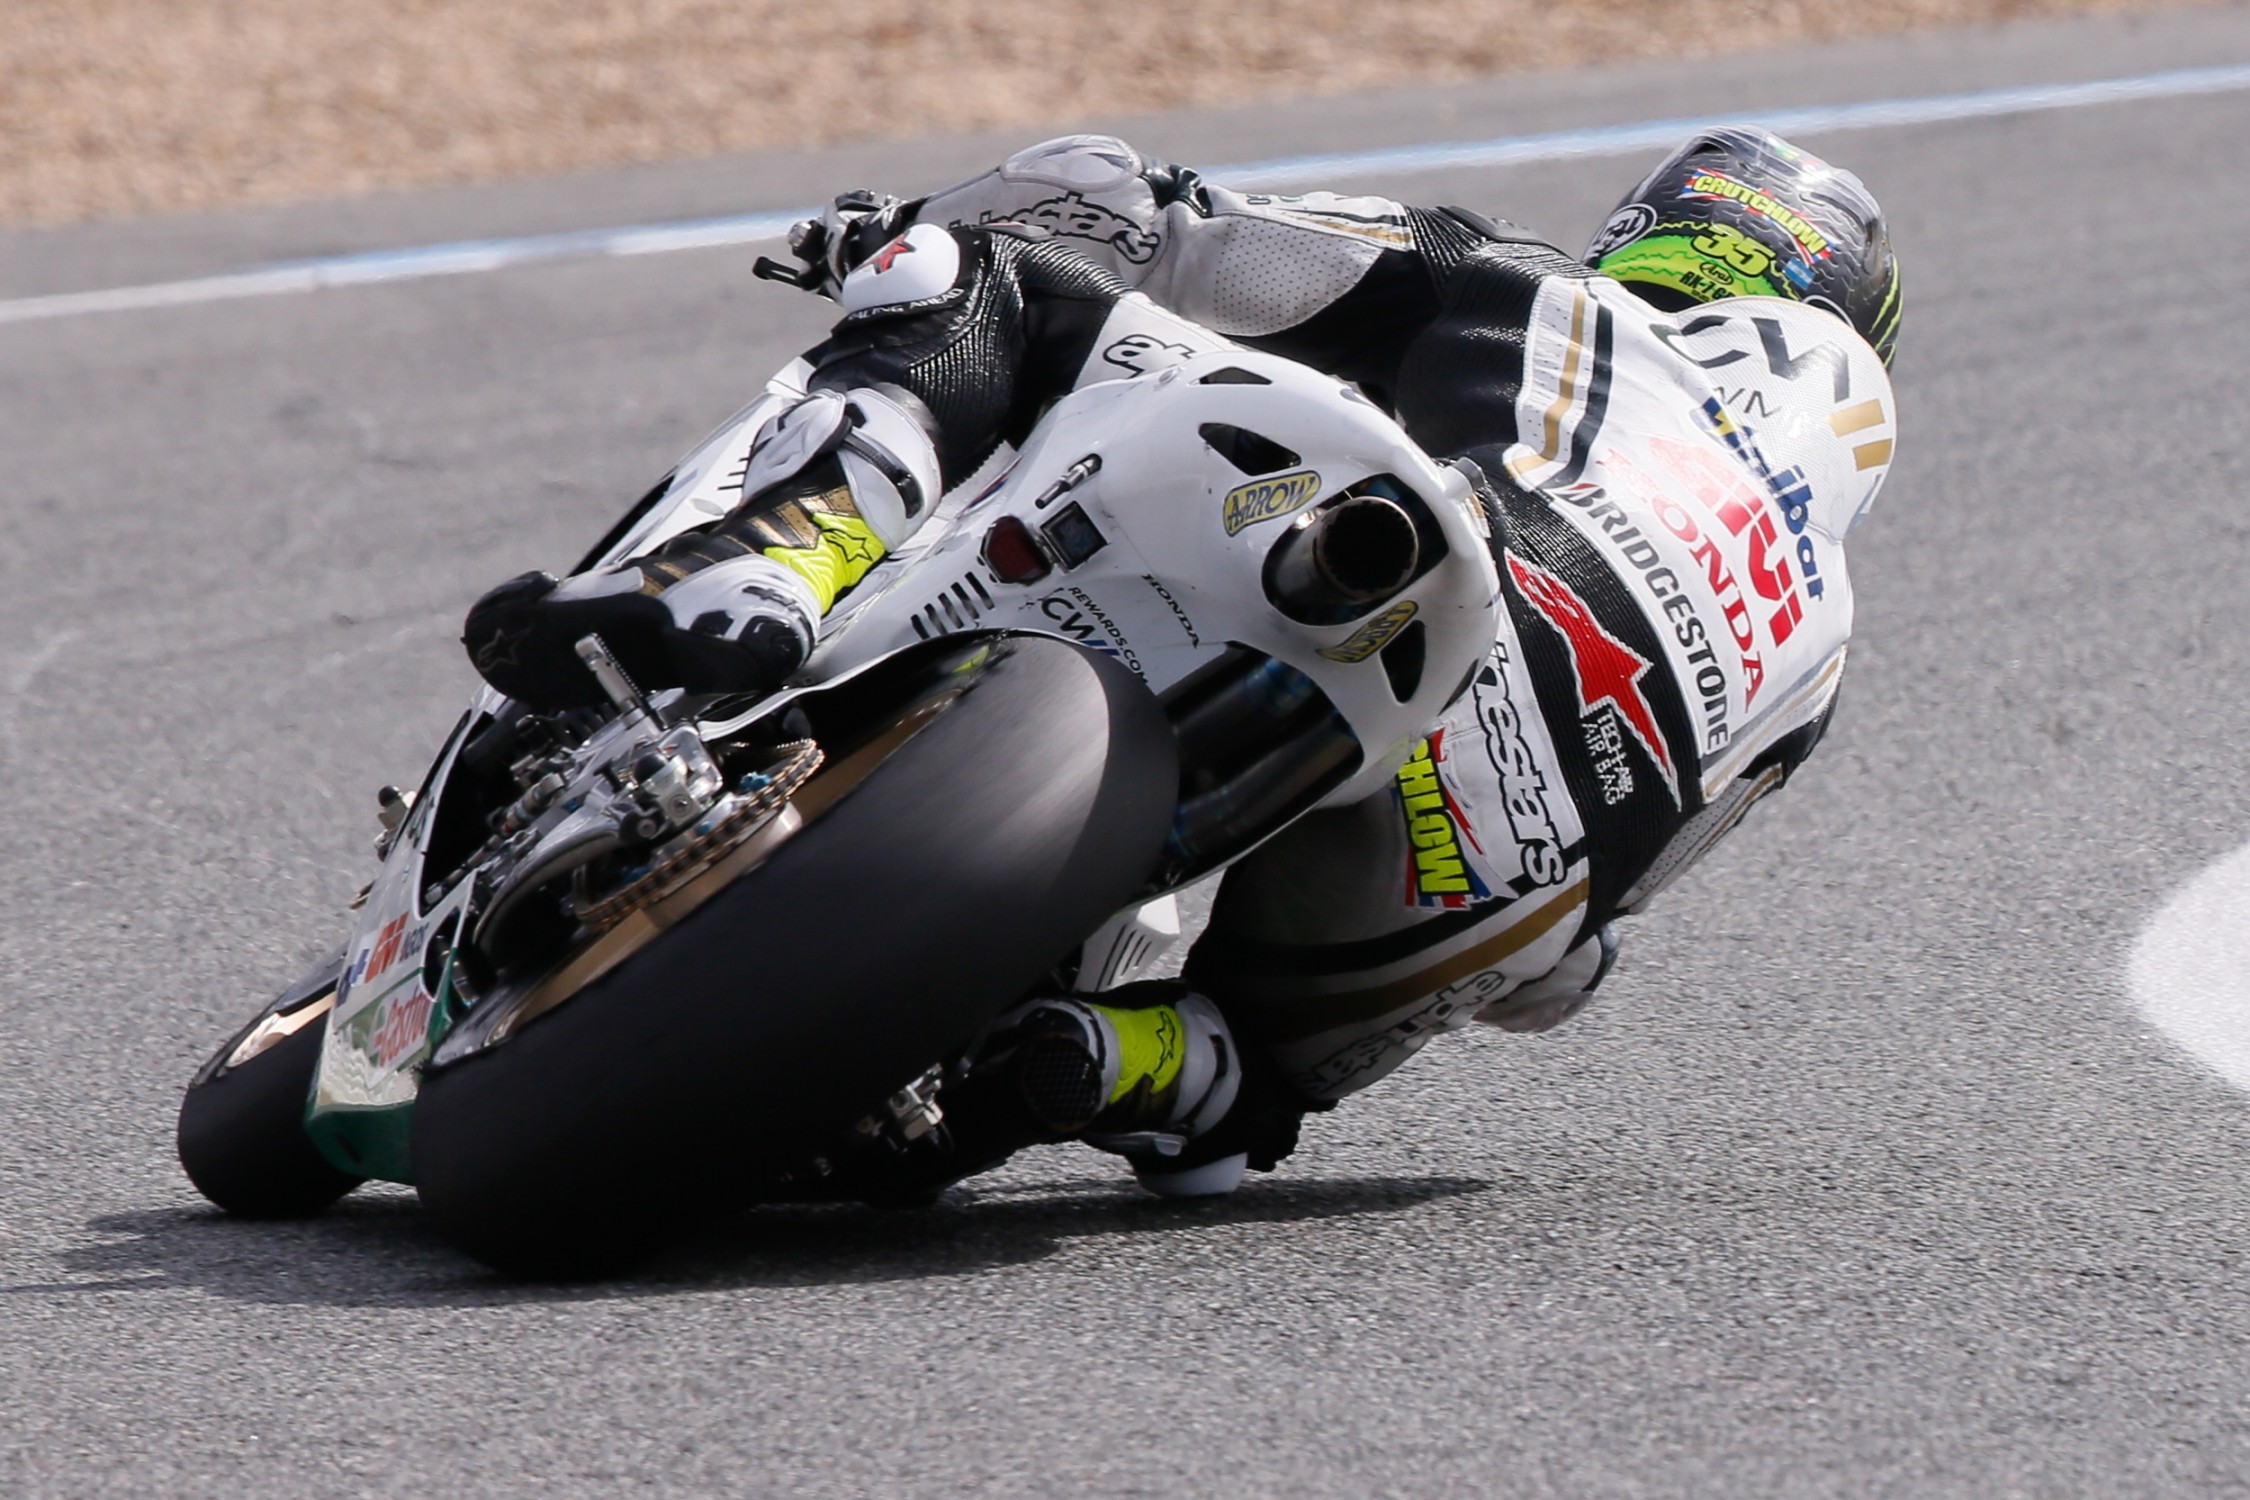 Cal Crutchlow Stays with LCR Honda Team in 2016 ...